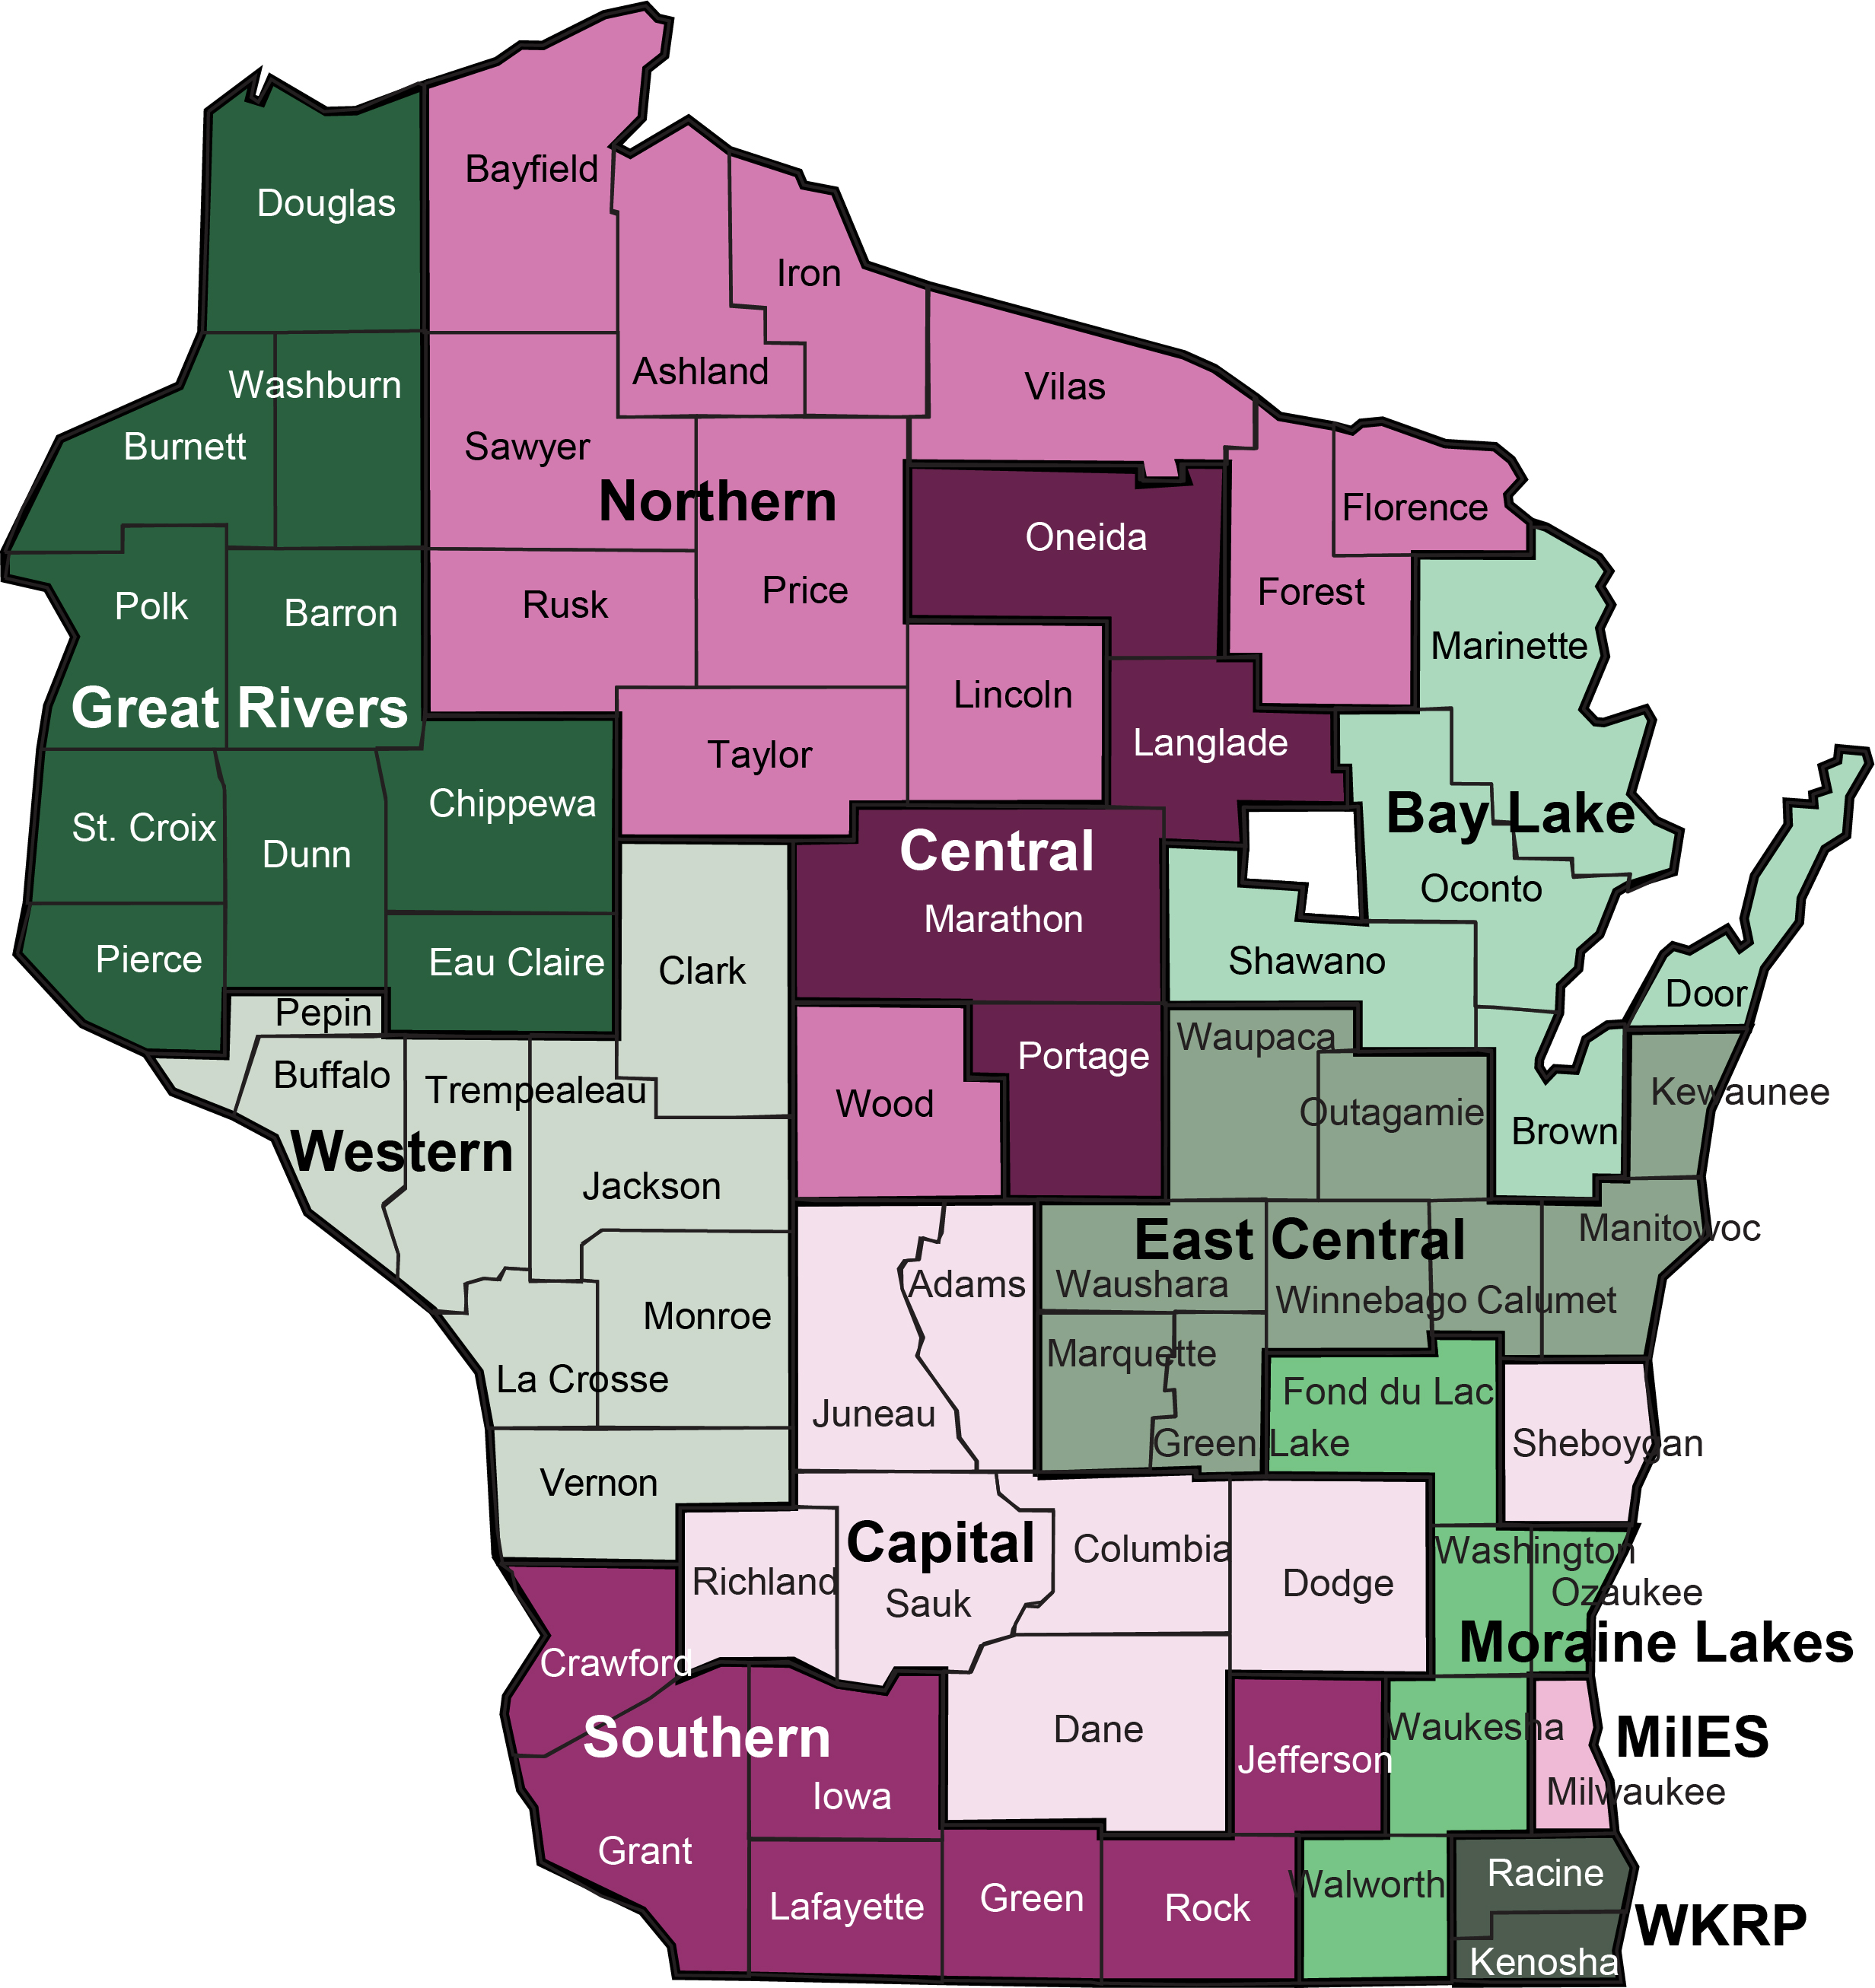 Income Maintenance and Tribal Agency Contact Information | Wisconsin on albany state map, green state map, iowa state map, oakland state map, arlington state map, corpus christi state map, oshkosh state map, galveston state map, billings state map, rochester state map, scranton state map, harvard state map, dayton state map, montgomery state map, lake county state map, tulsa state map, peoria state map, spokane state map, aurora state map, allentown state map,